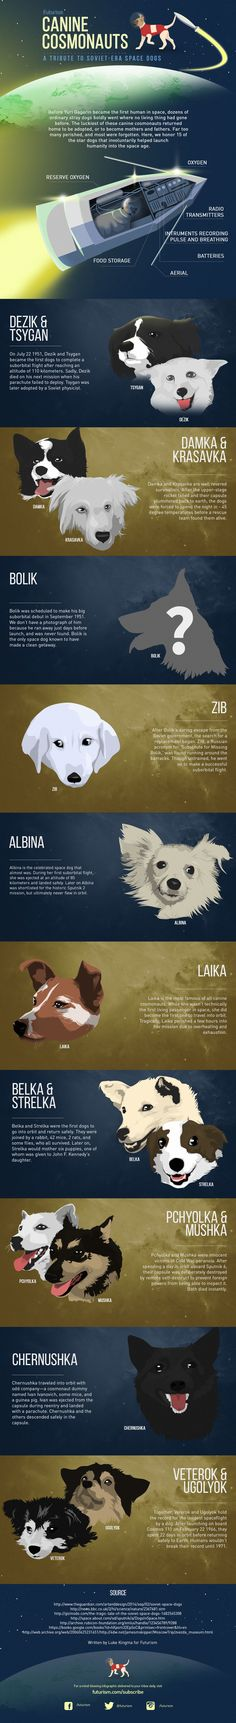 Meet 15 canine cosmonauts who involuntarily launched mankind into the space age during the 1950s.